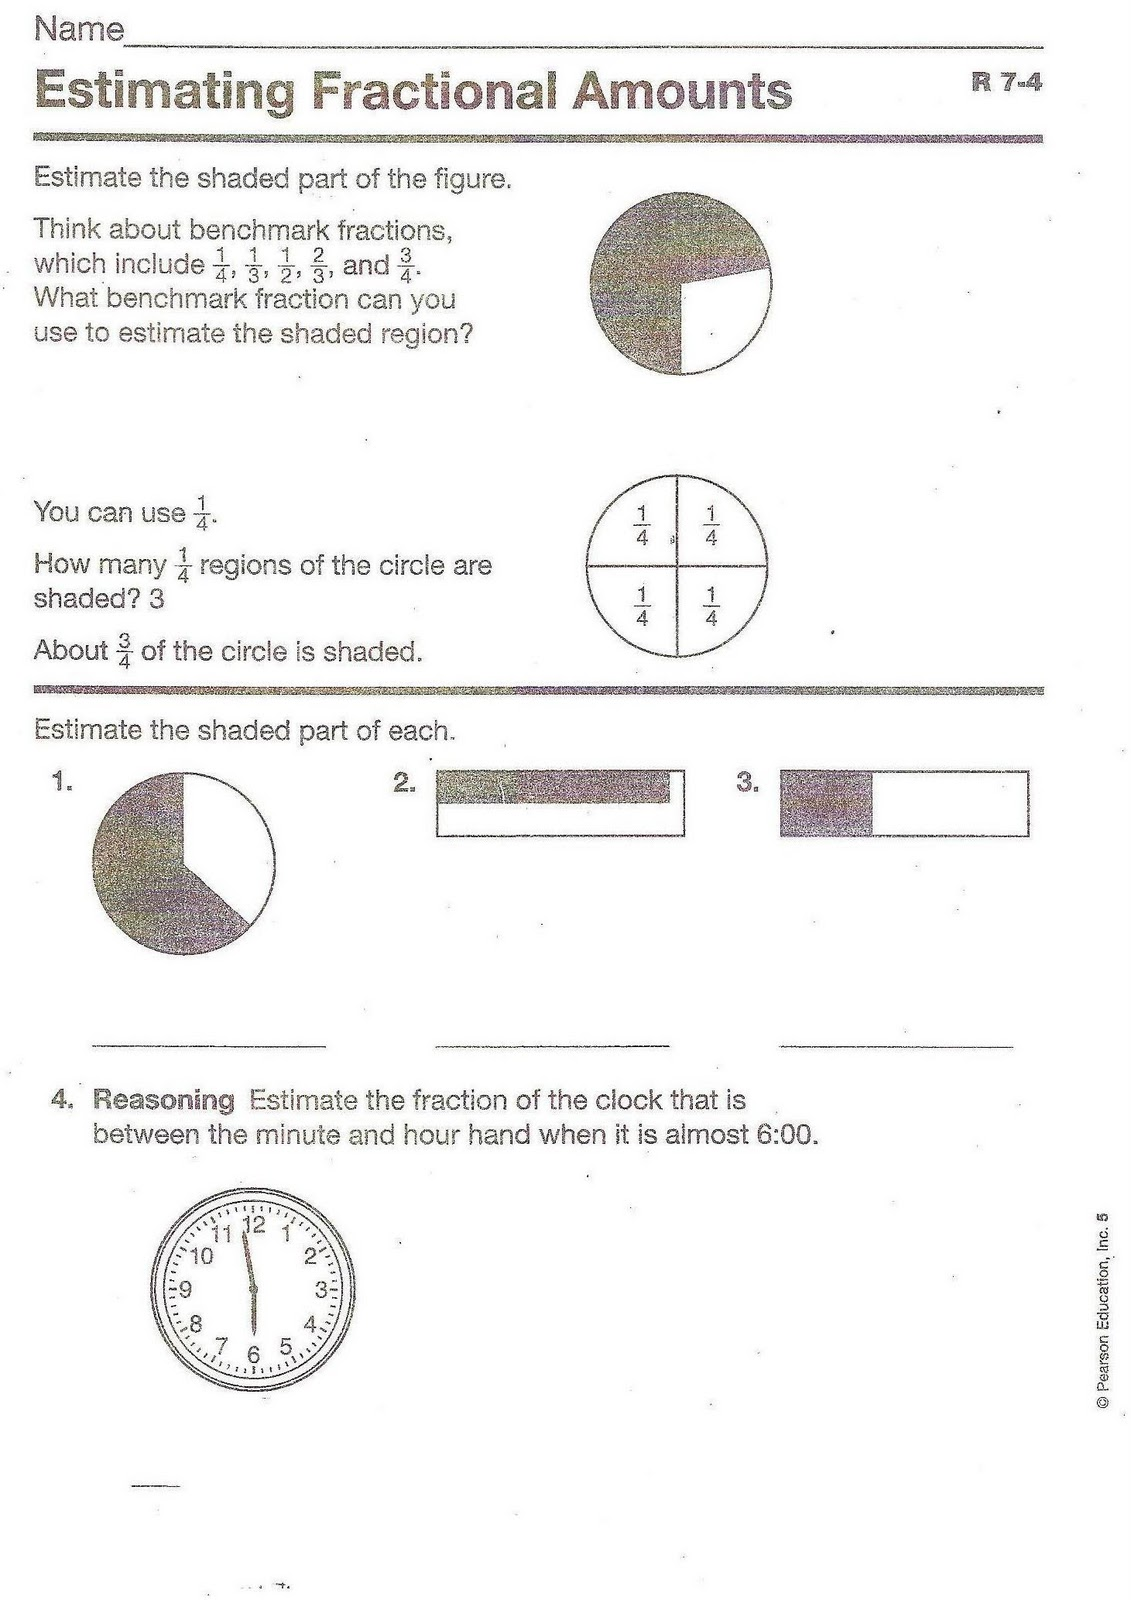 Estimating Fractional Amounts Worksheet Answers   Printable Worksheets and  Activities for Teachers [ 1600 x 1131 Pixel ]